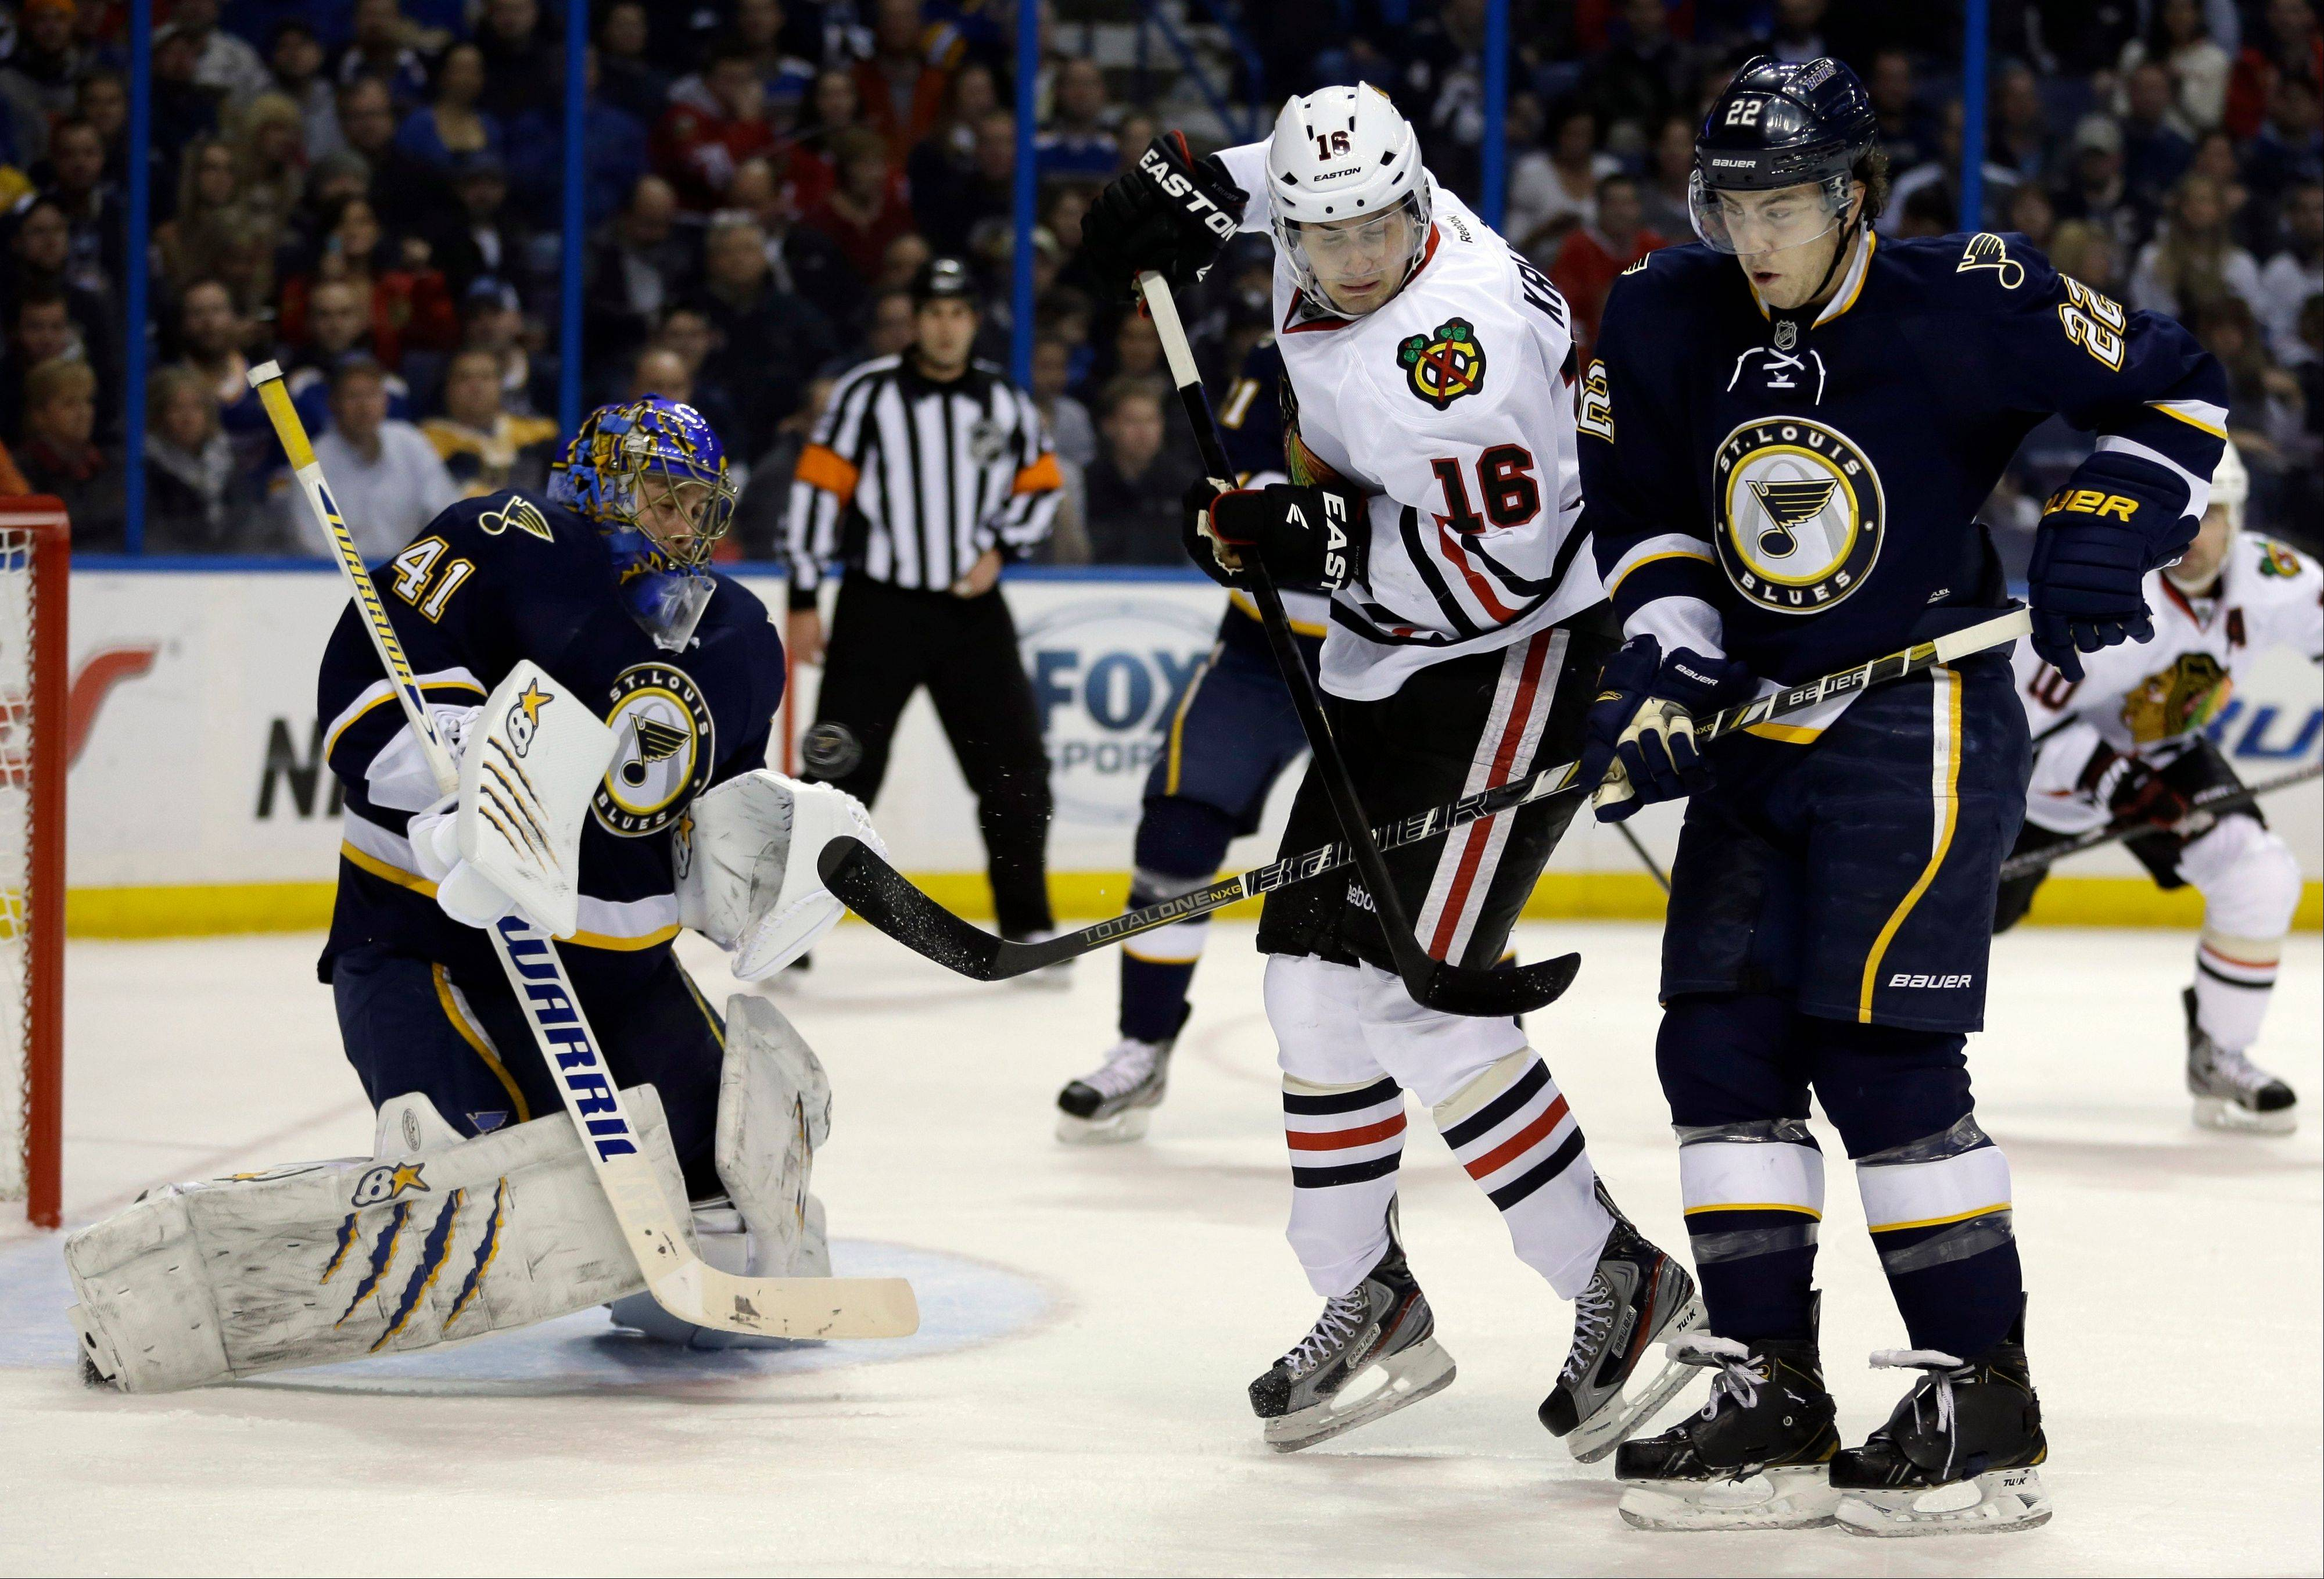 St. Louis Blues goalie Jaroslav Halak deflects the puck as it flies past Chicago Blackhawks' Marcus Kruger, center, and Blues' Kevin Shattenkirk, right, during the first period.